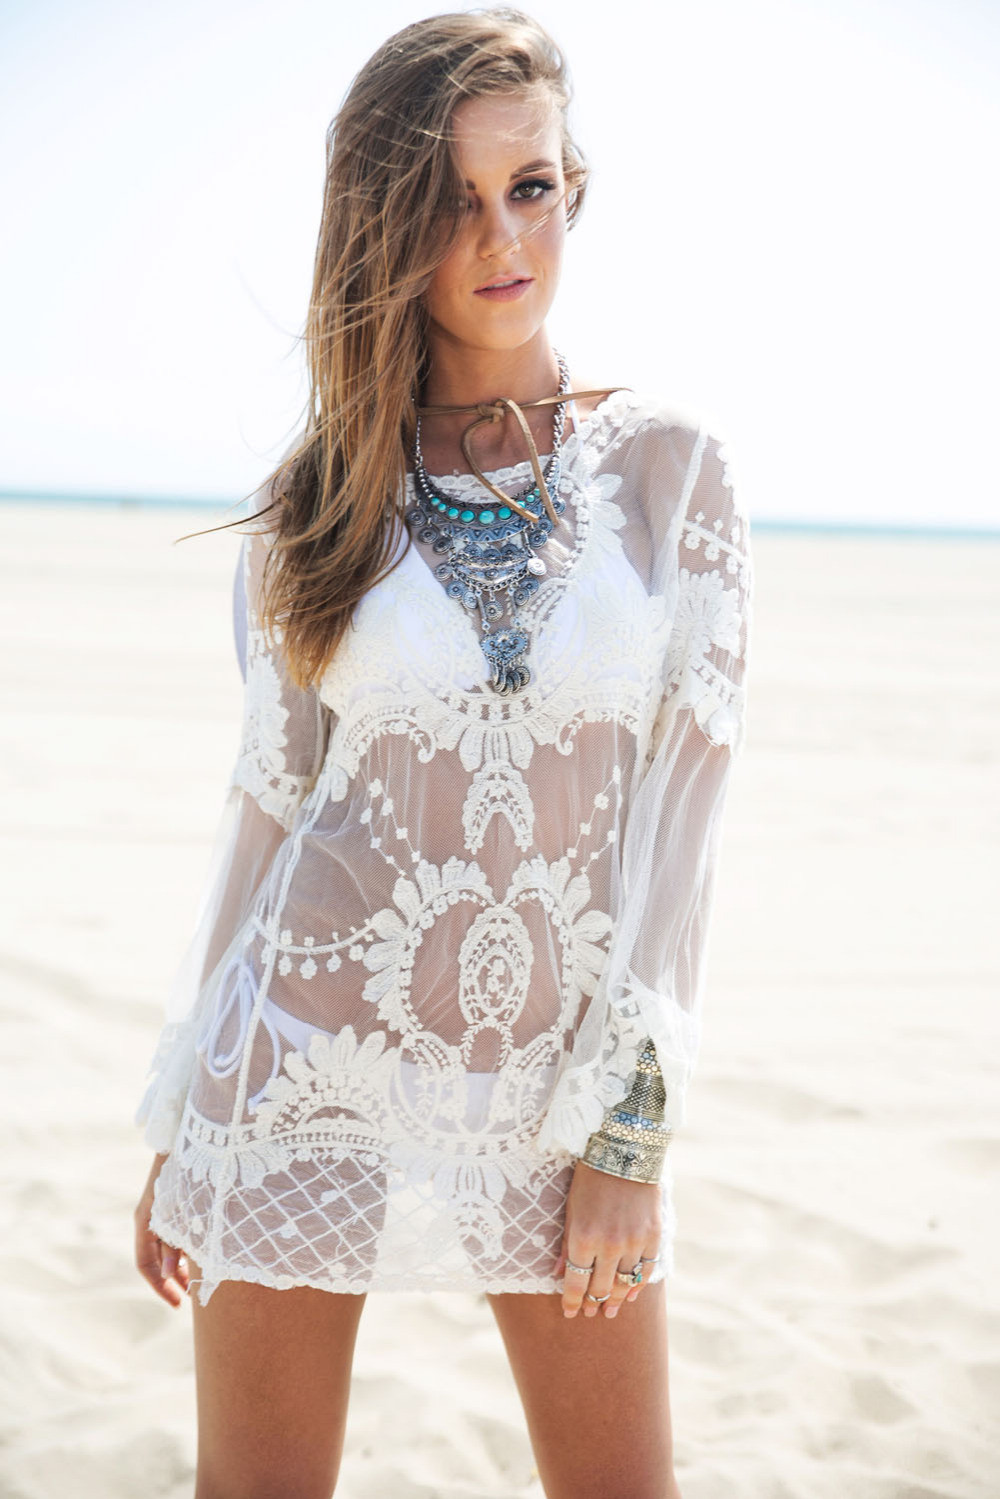 Crochet Beach Cover Up Unique Beach Cover Up 2015 New Women Bathing Suit Cover Up Y Of Lovely 41 Ideas Crochet Beach Cover Up